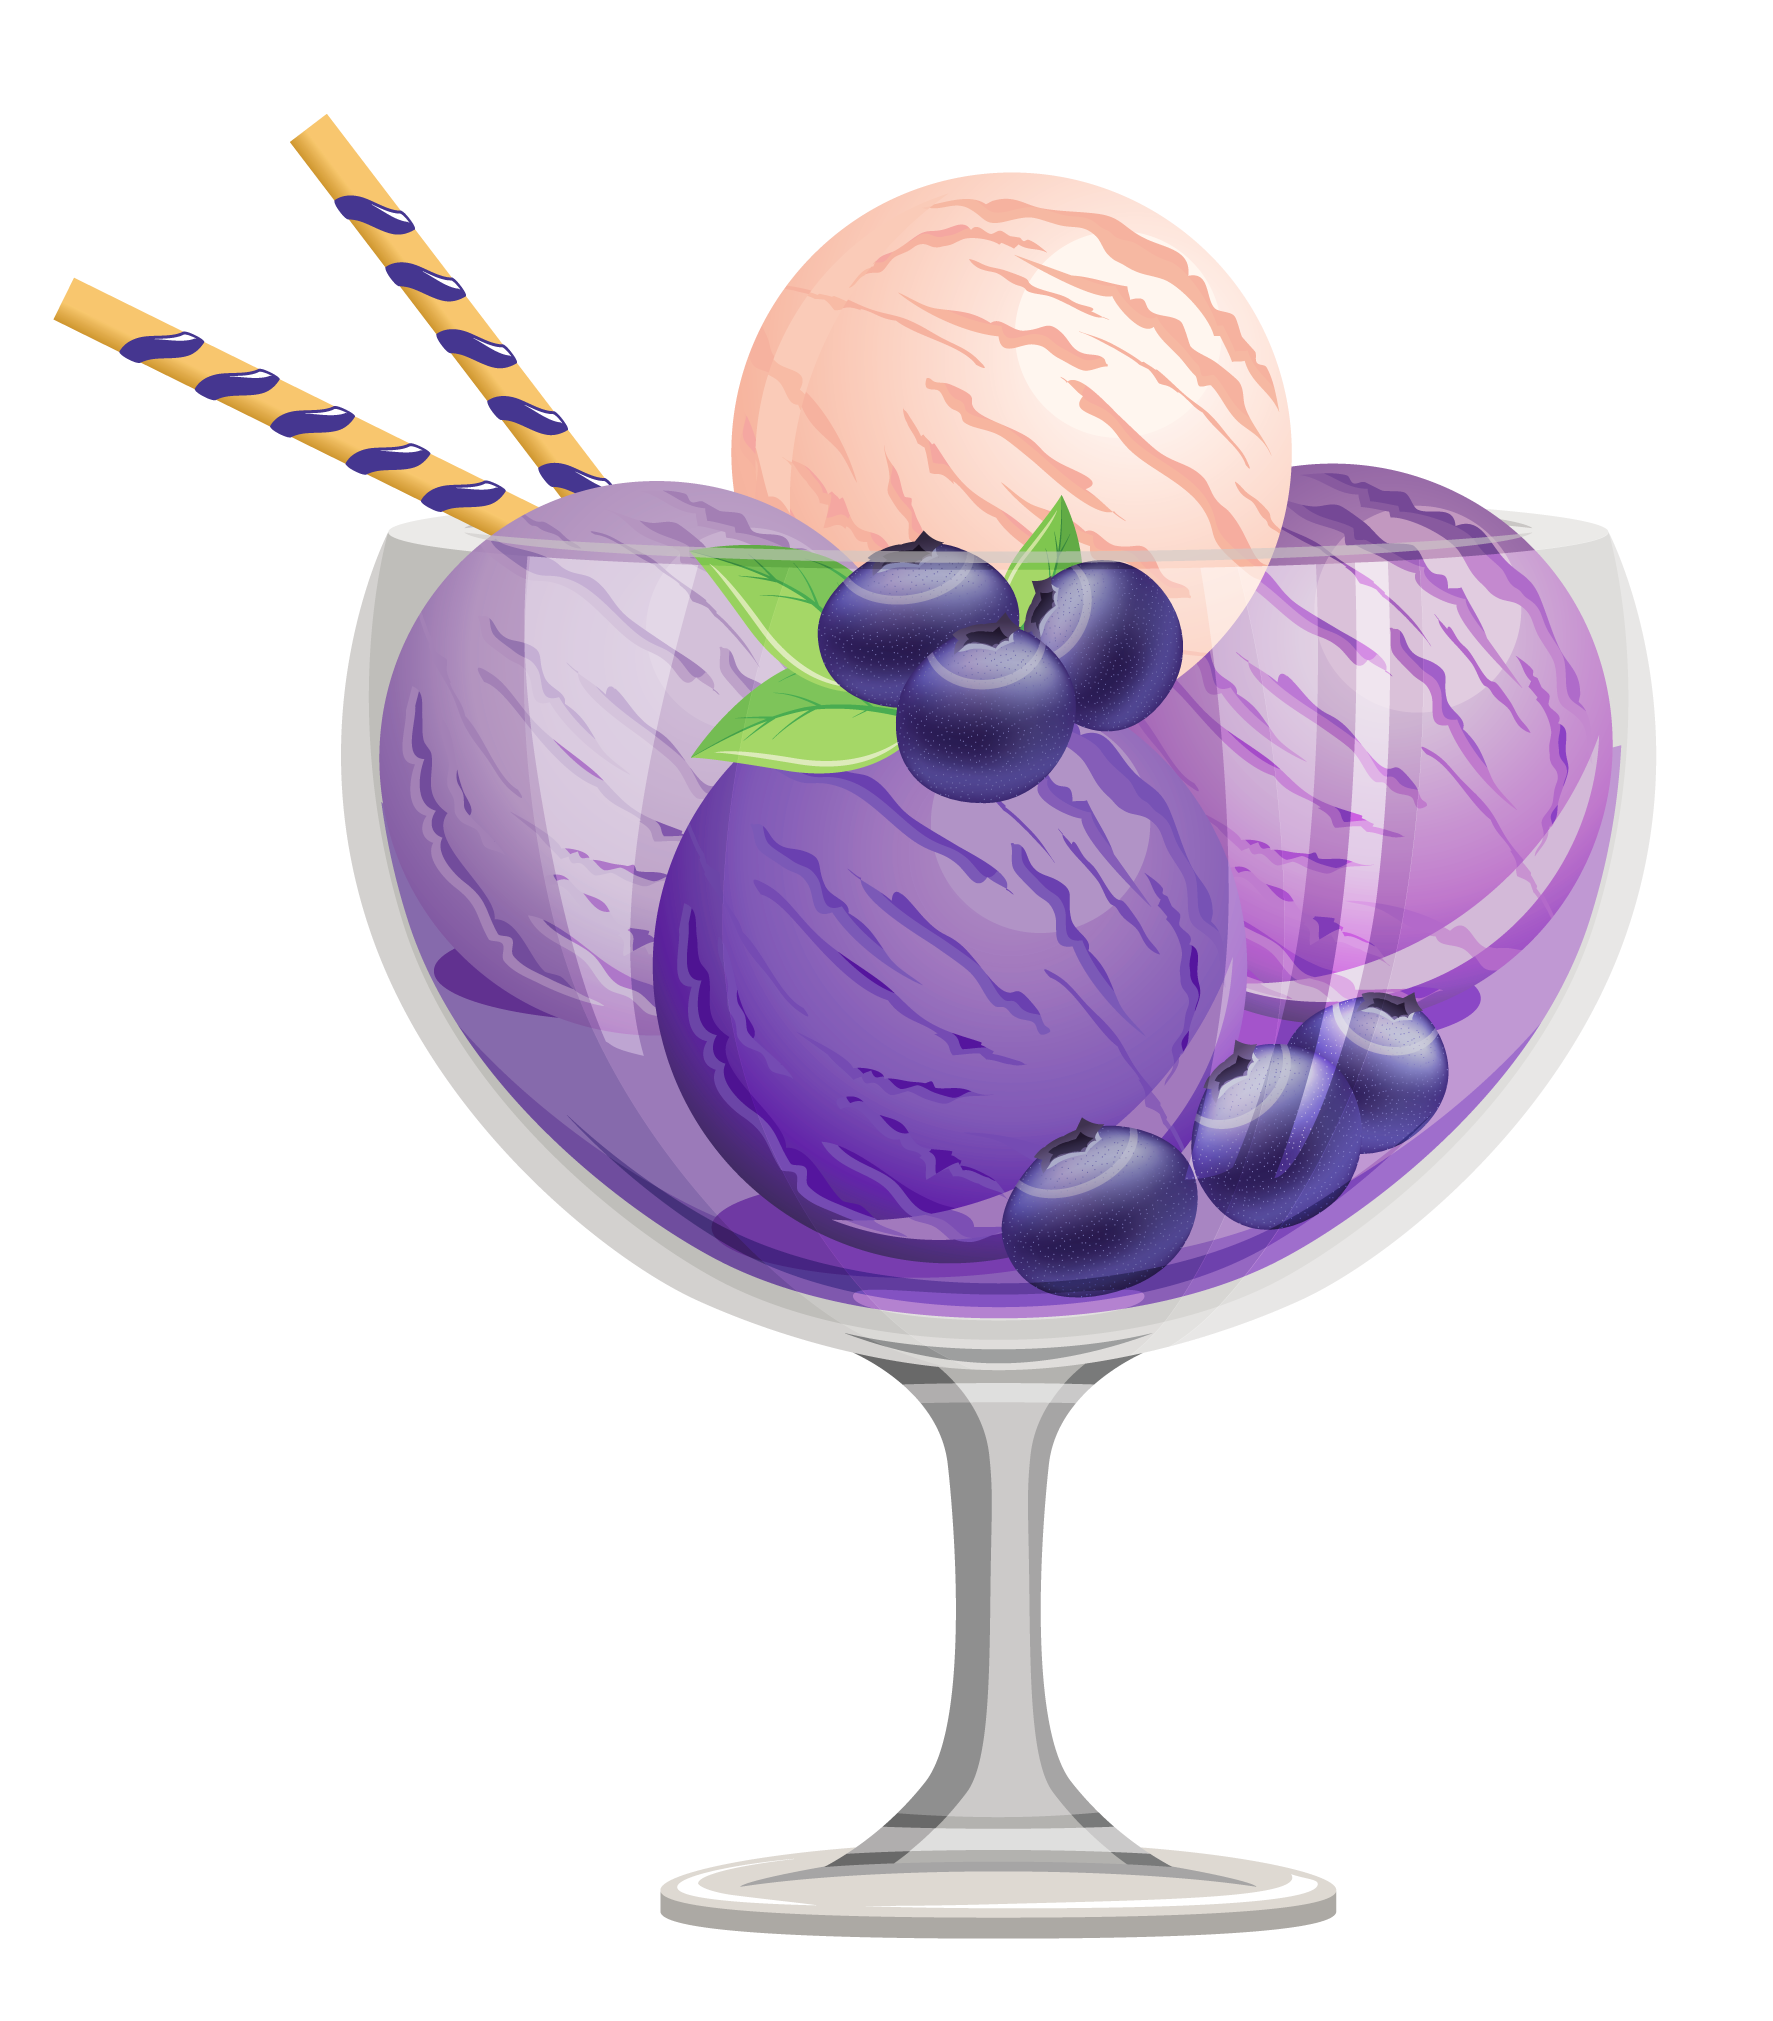 Transparent Blueberry Ice Cream Sundae Clipart Png